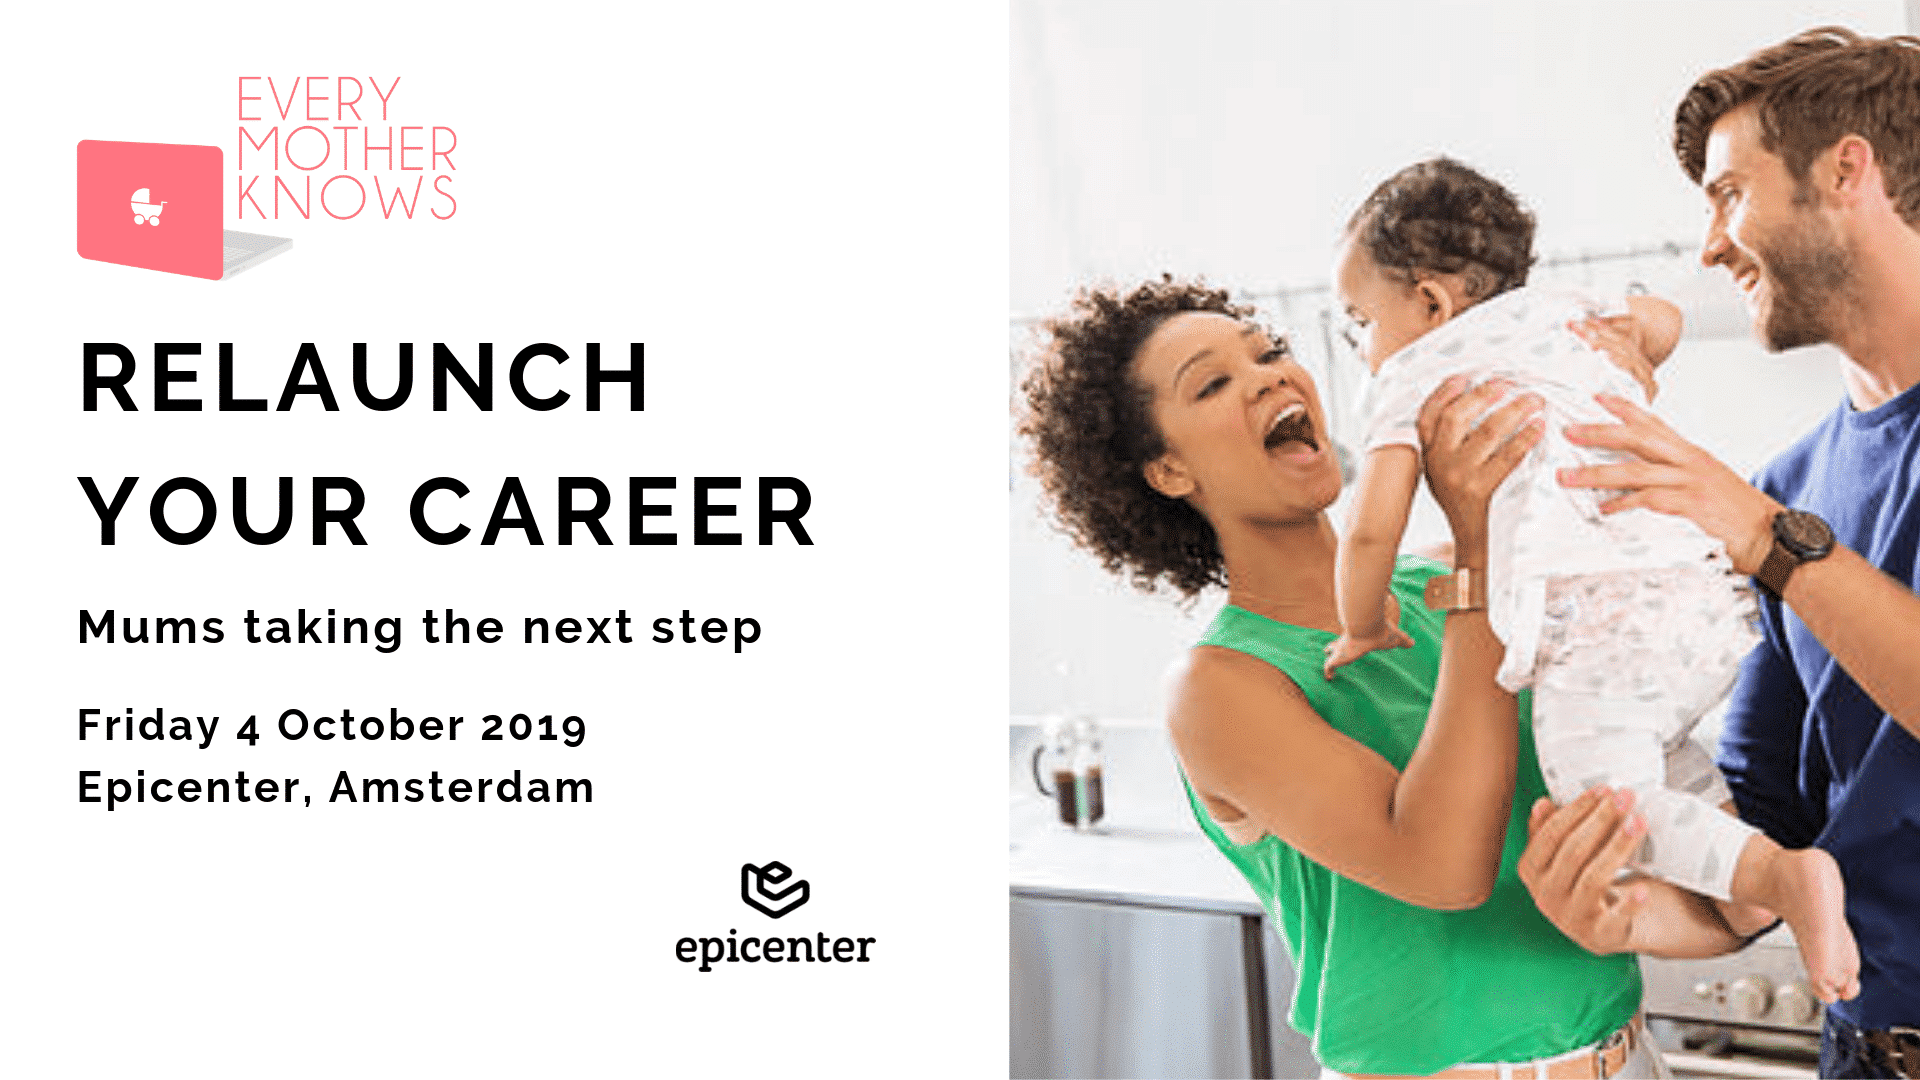 relaunch your career event